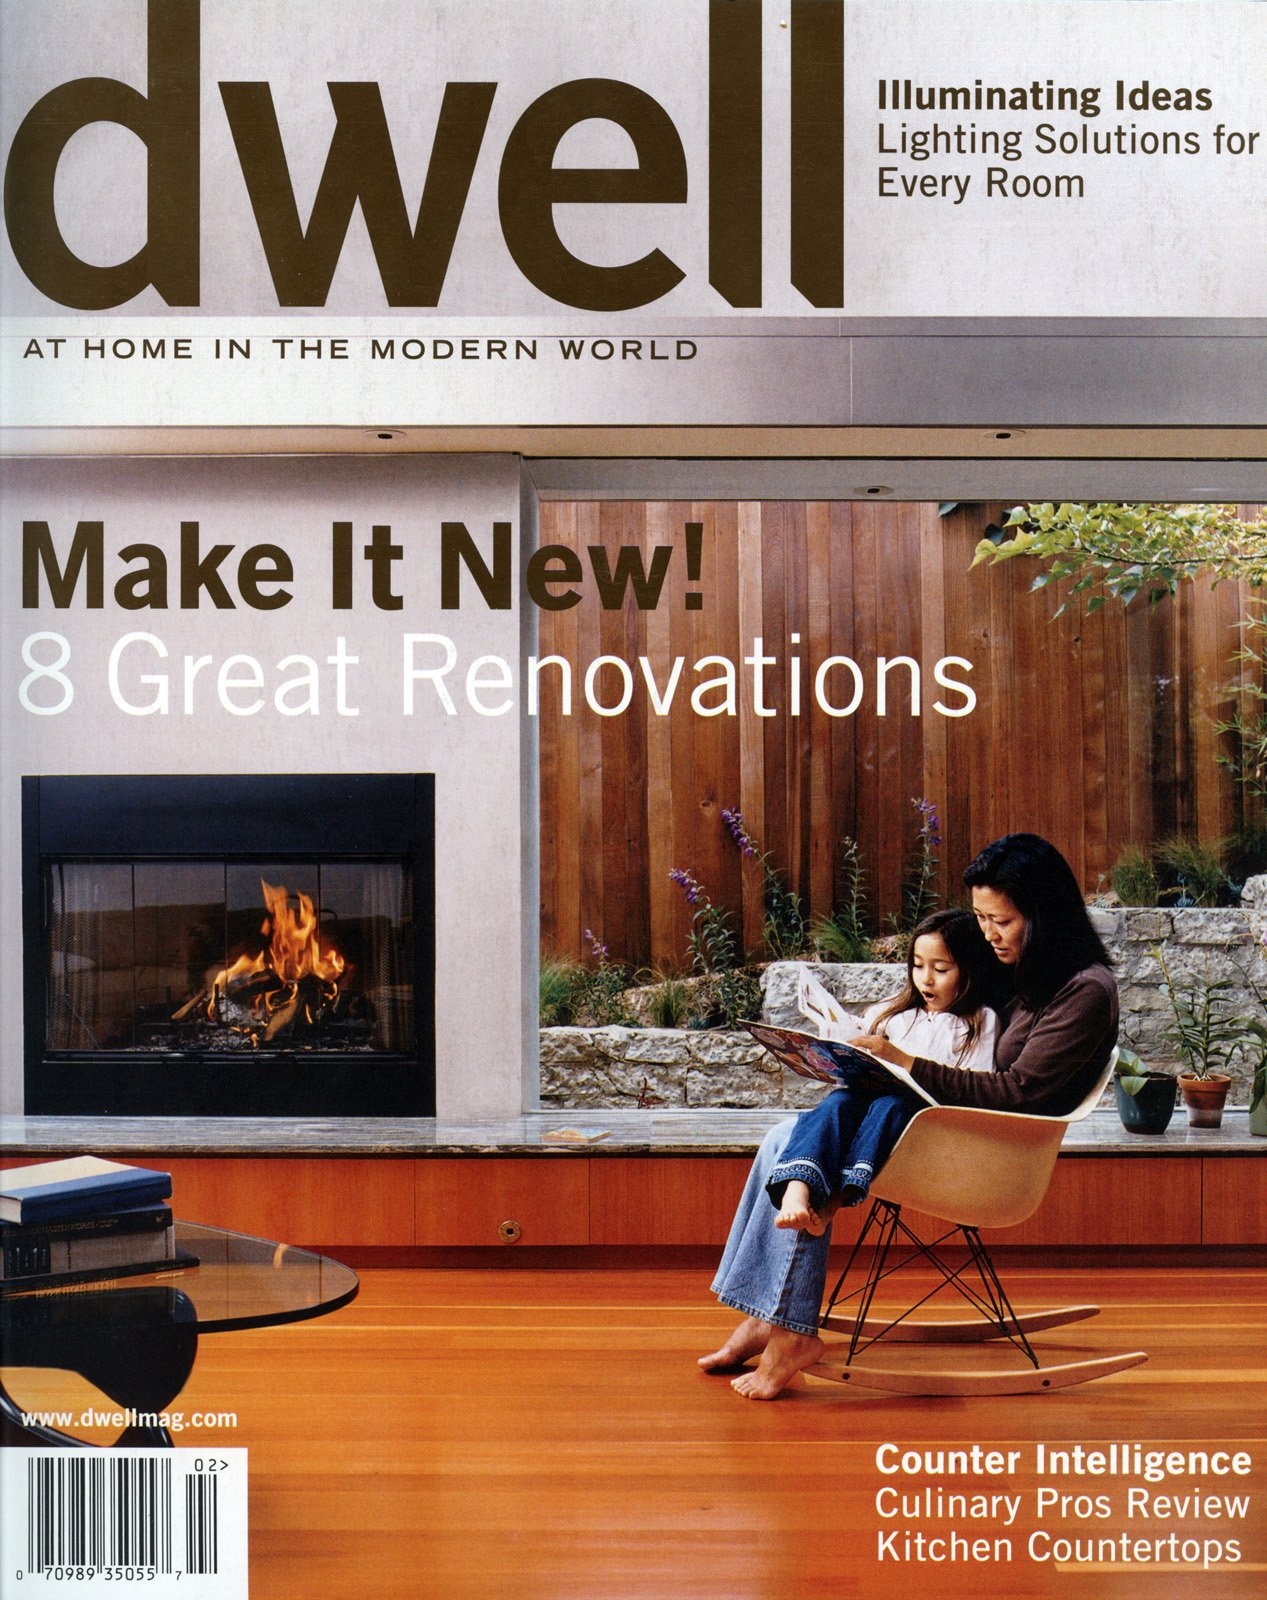 MAKE IT NEW!  8 Great Renovations  January/February 2004, Vol. 04 Issue 03.  Dwell January/February 2004, Vol. 04 Issue 03: Make It New! by Dwell